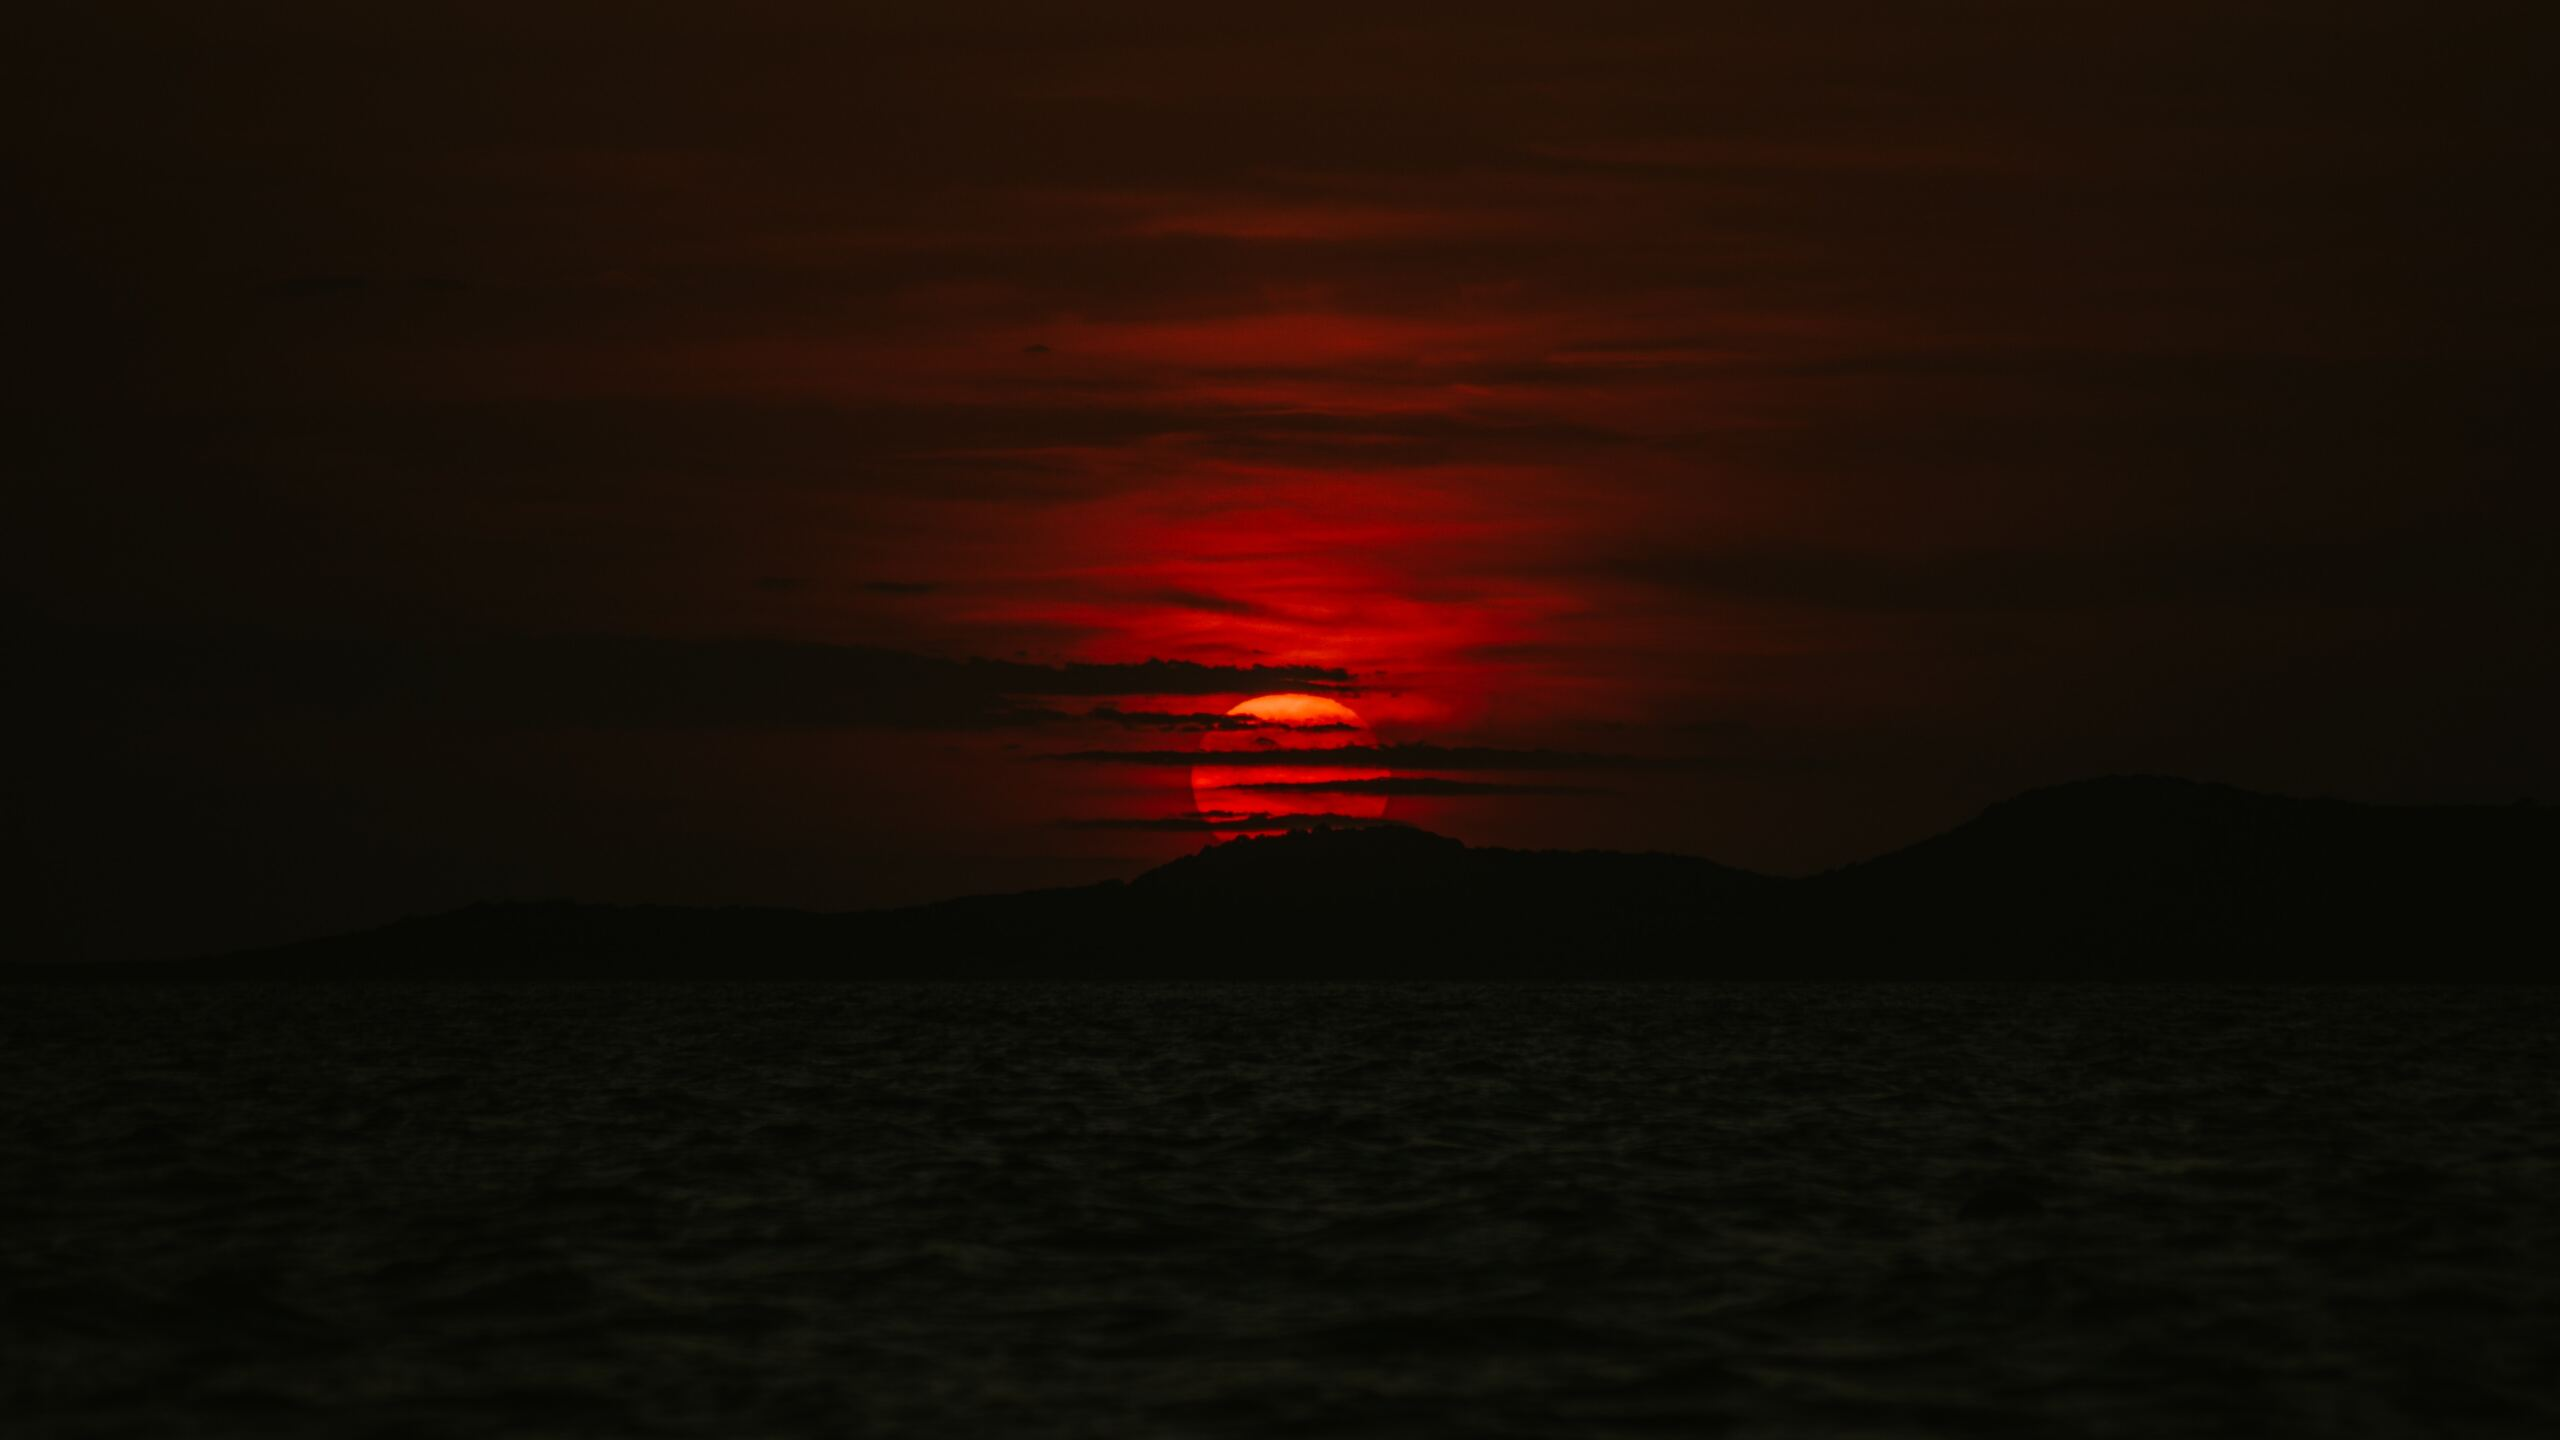 dark-sunset-sea-5k-8f.jpg